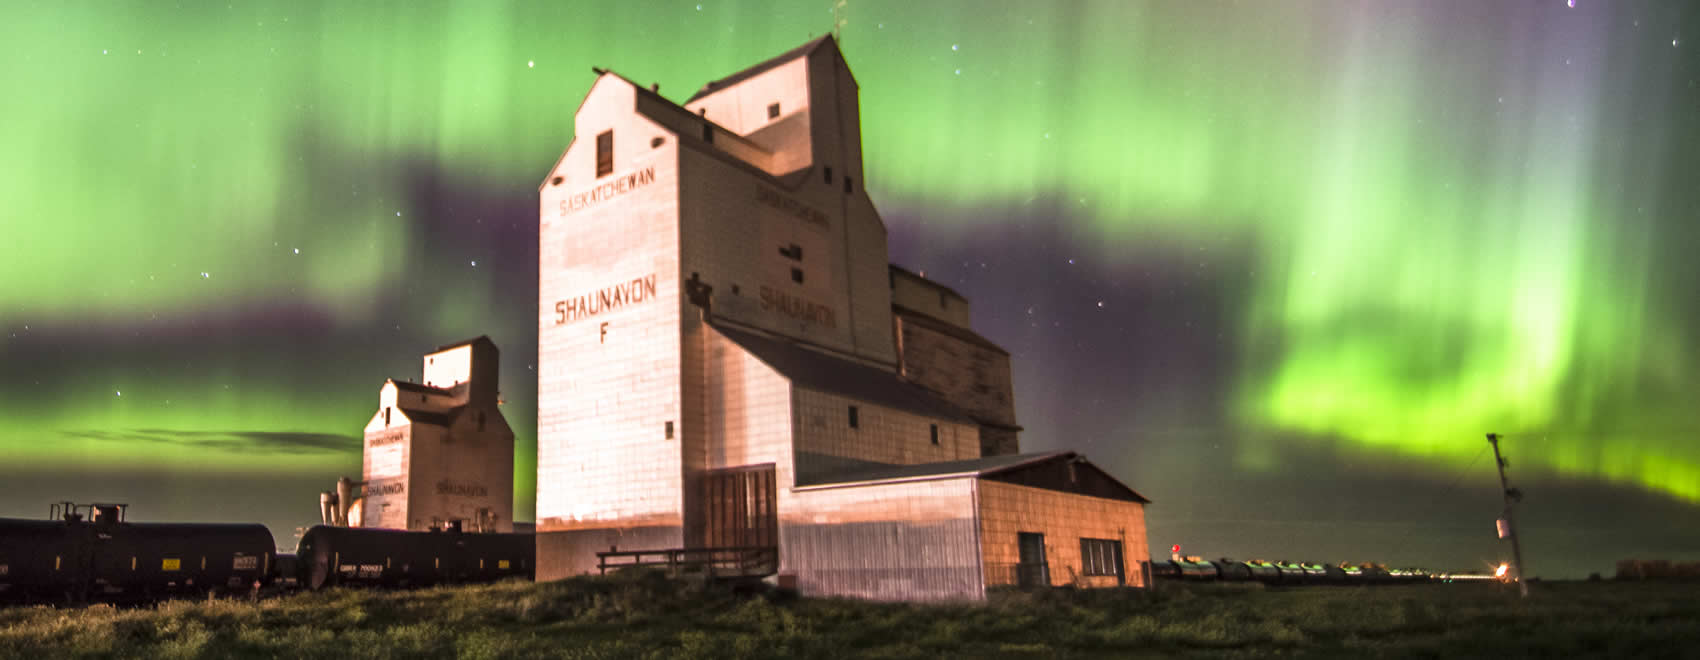 Shaunavon Grain Elevator Saskatchewan - Northern Lights